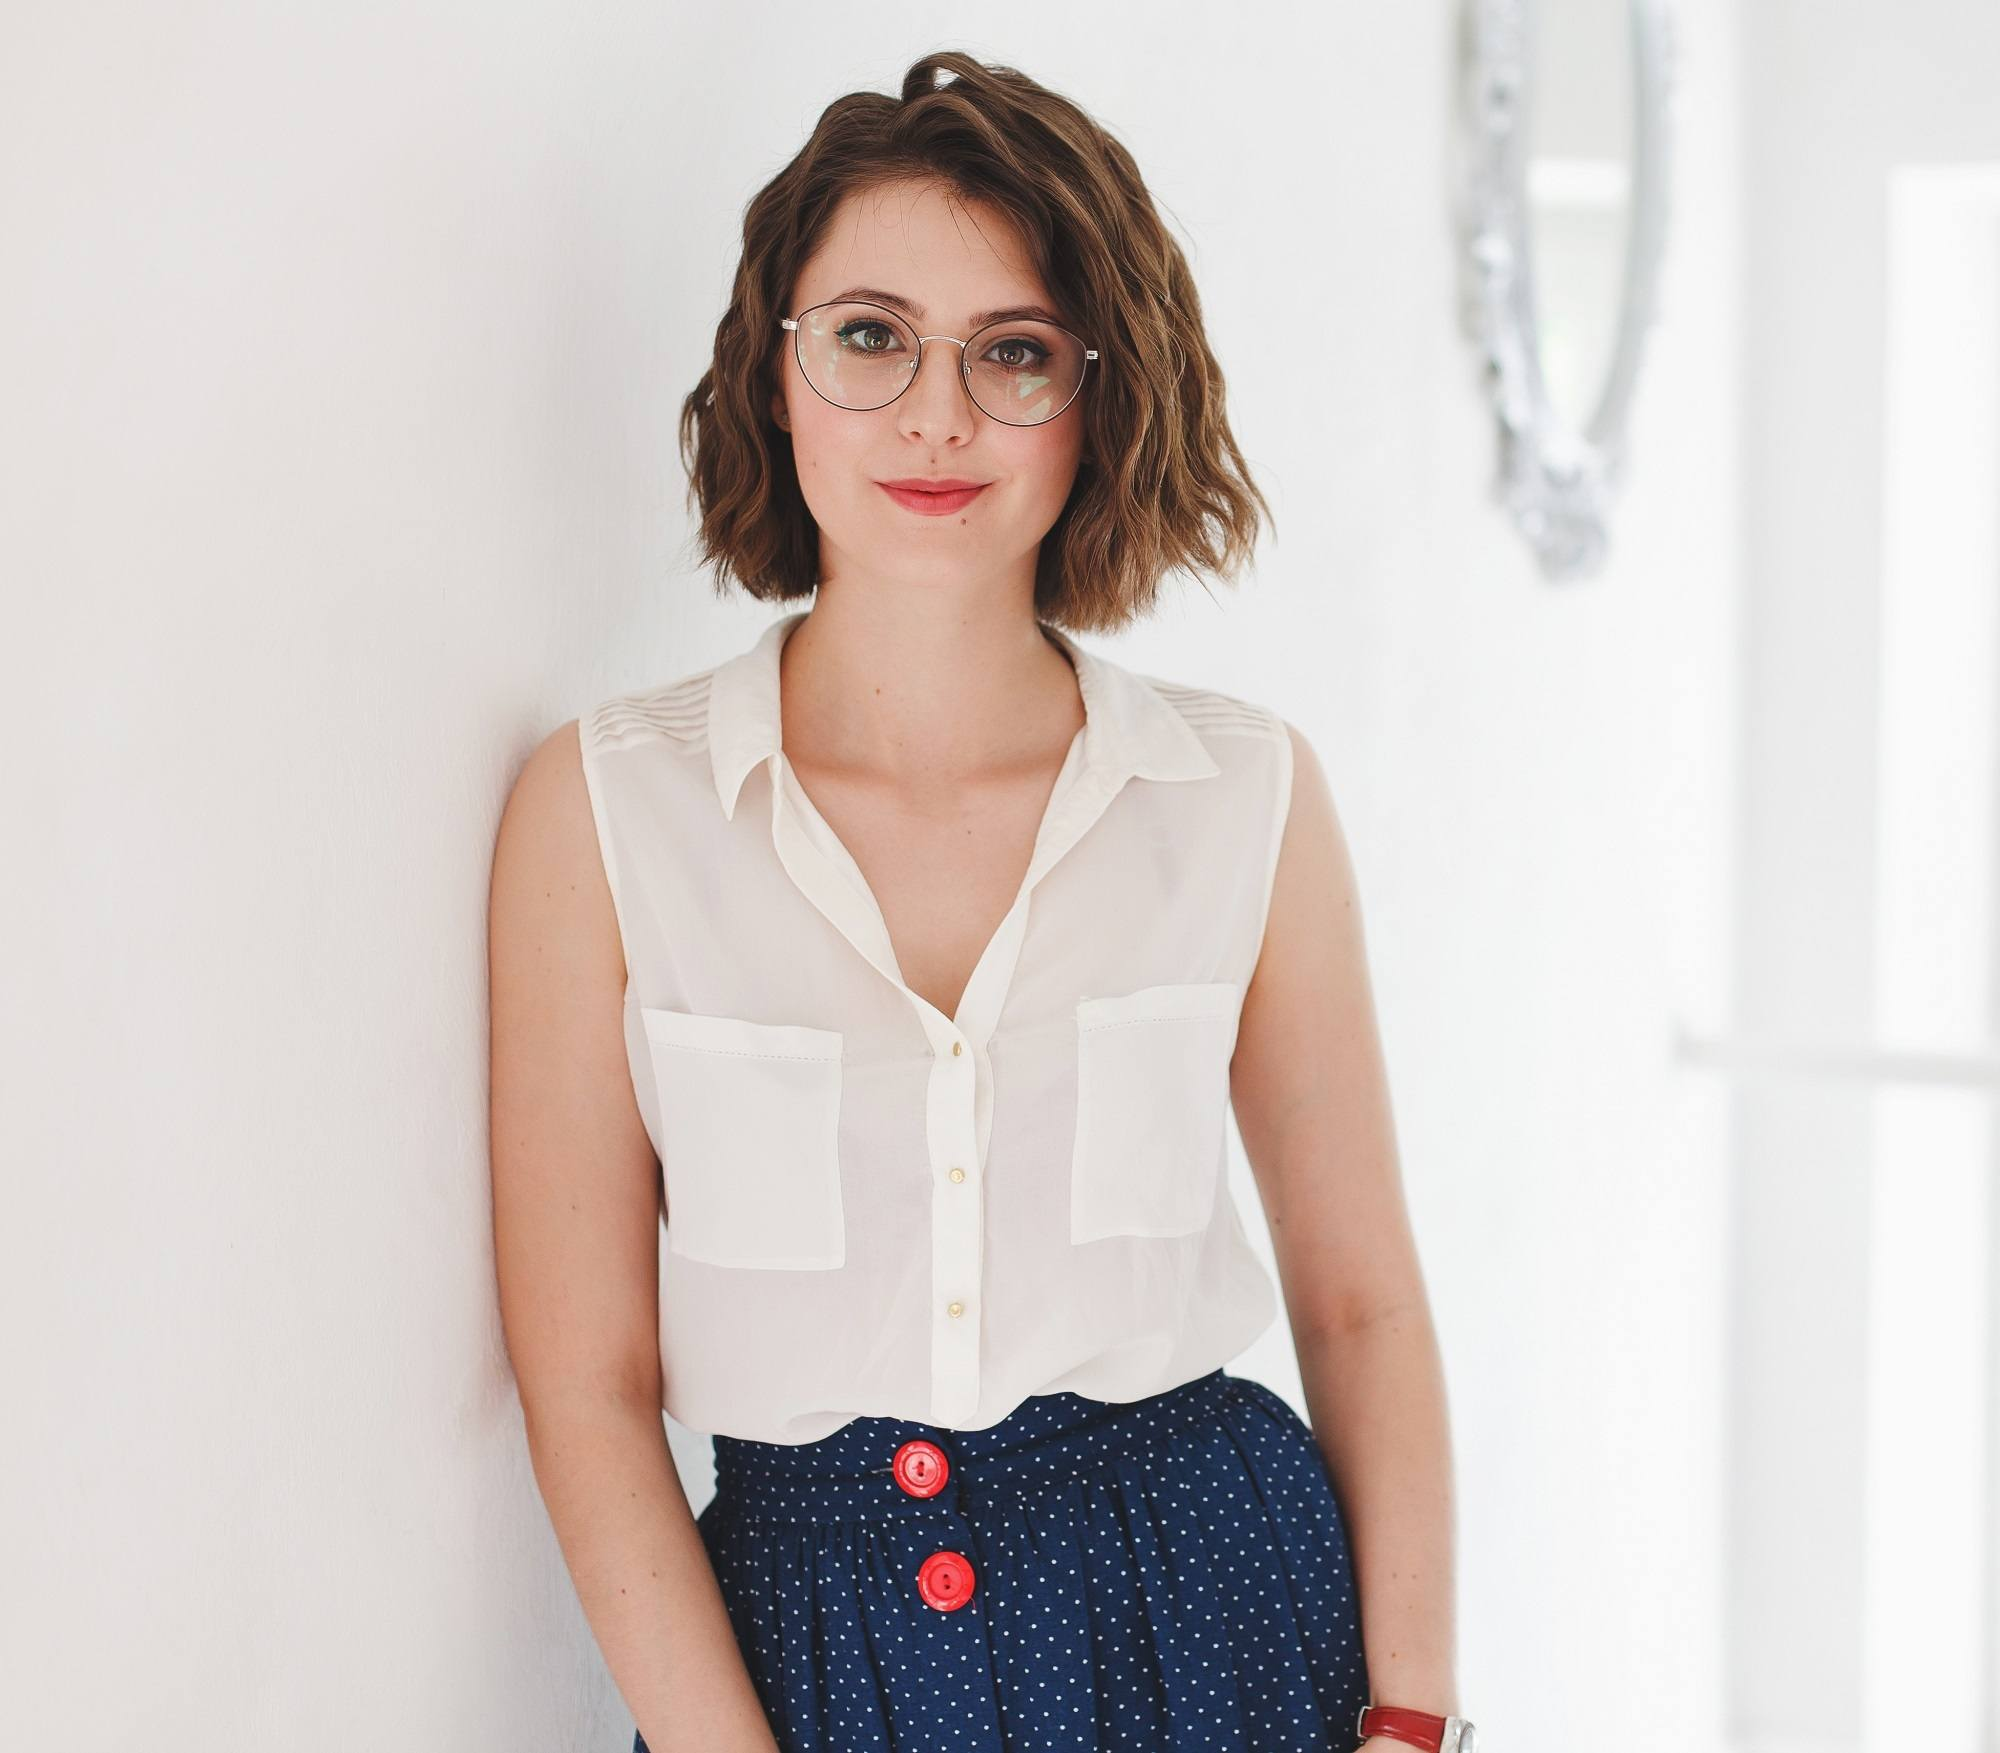 Short wavy hair: Woman with short wavy hair and eyeglasses